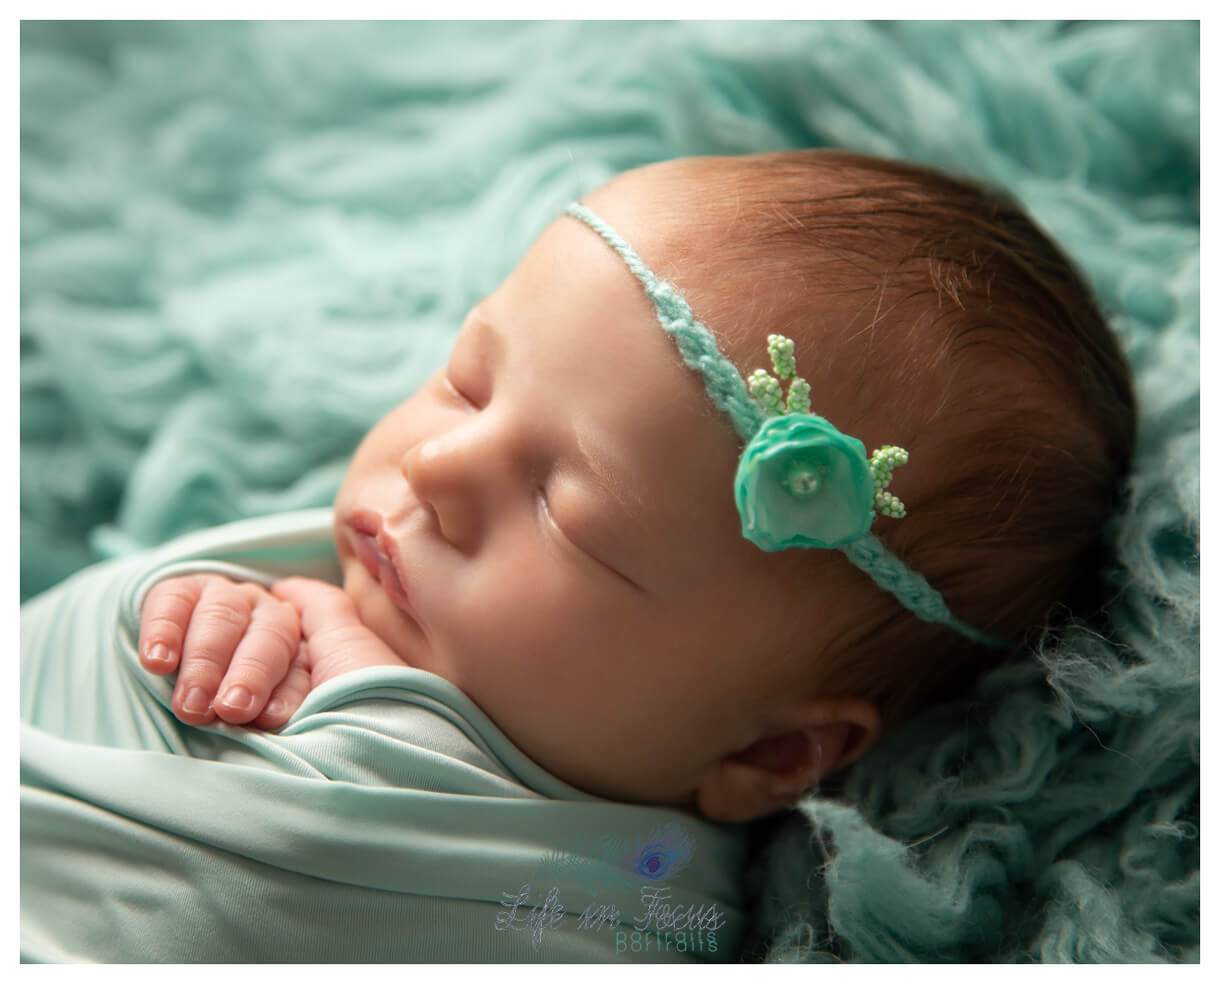 sleeping newborn baby girl Life in Focus Portraits newbonr baby photography Rhu Helensburgh Cardross